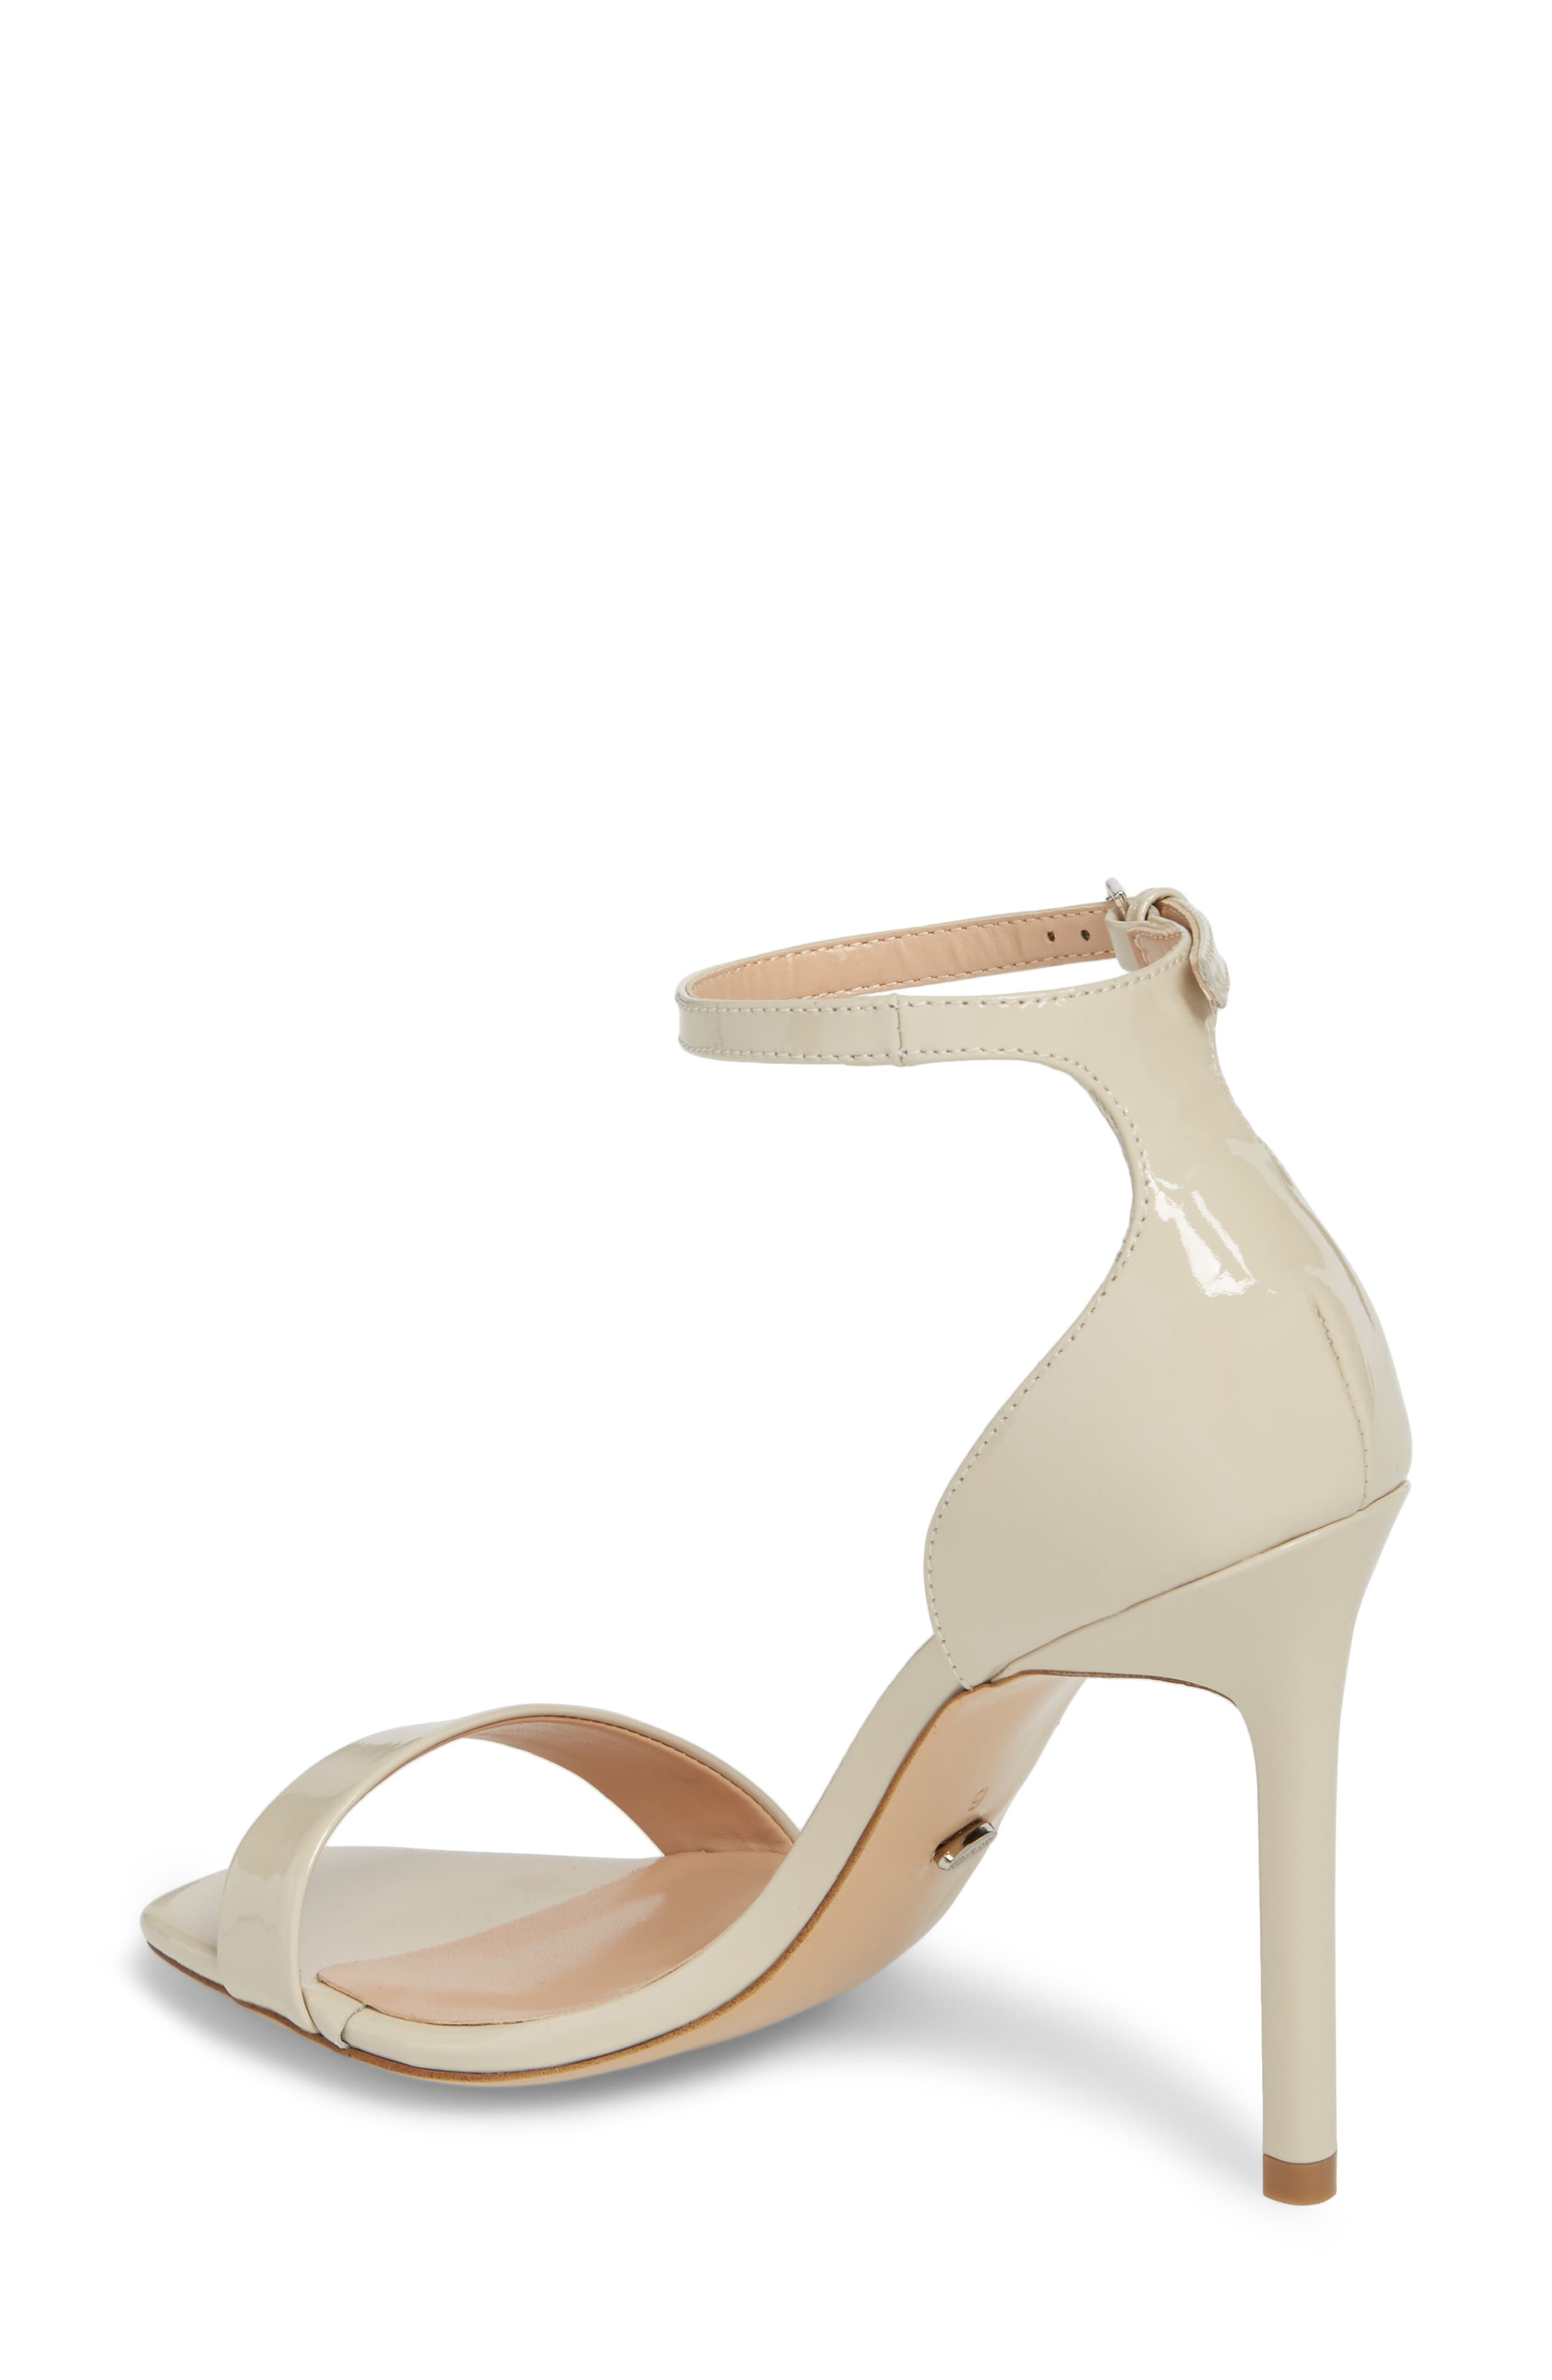 Sacha Ankle Strap Sandal,                             Alternate thumbnail 2, color,                             Oyster Patent Leather